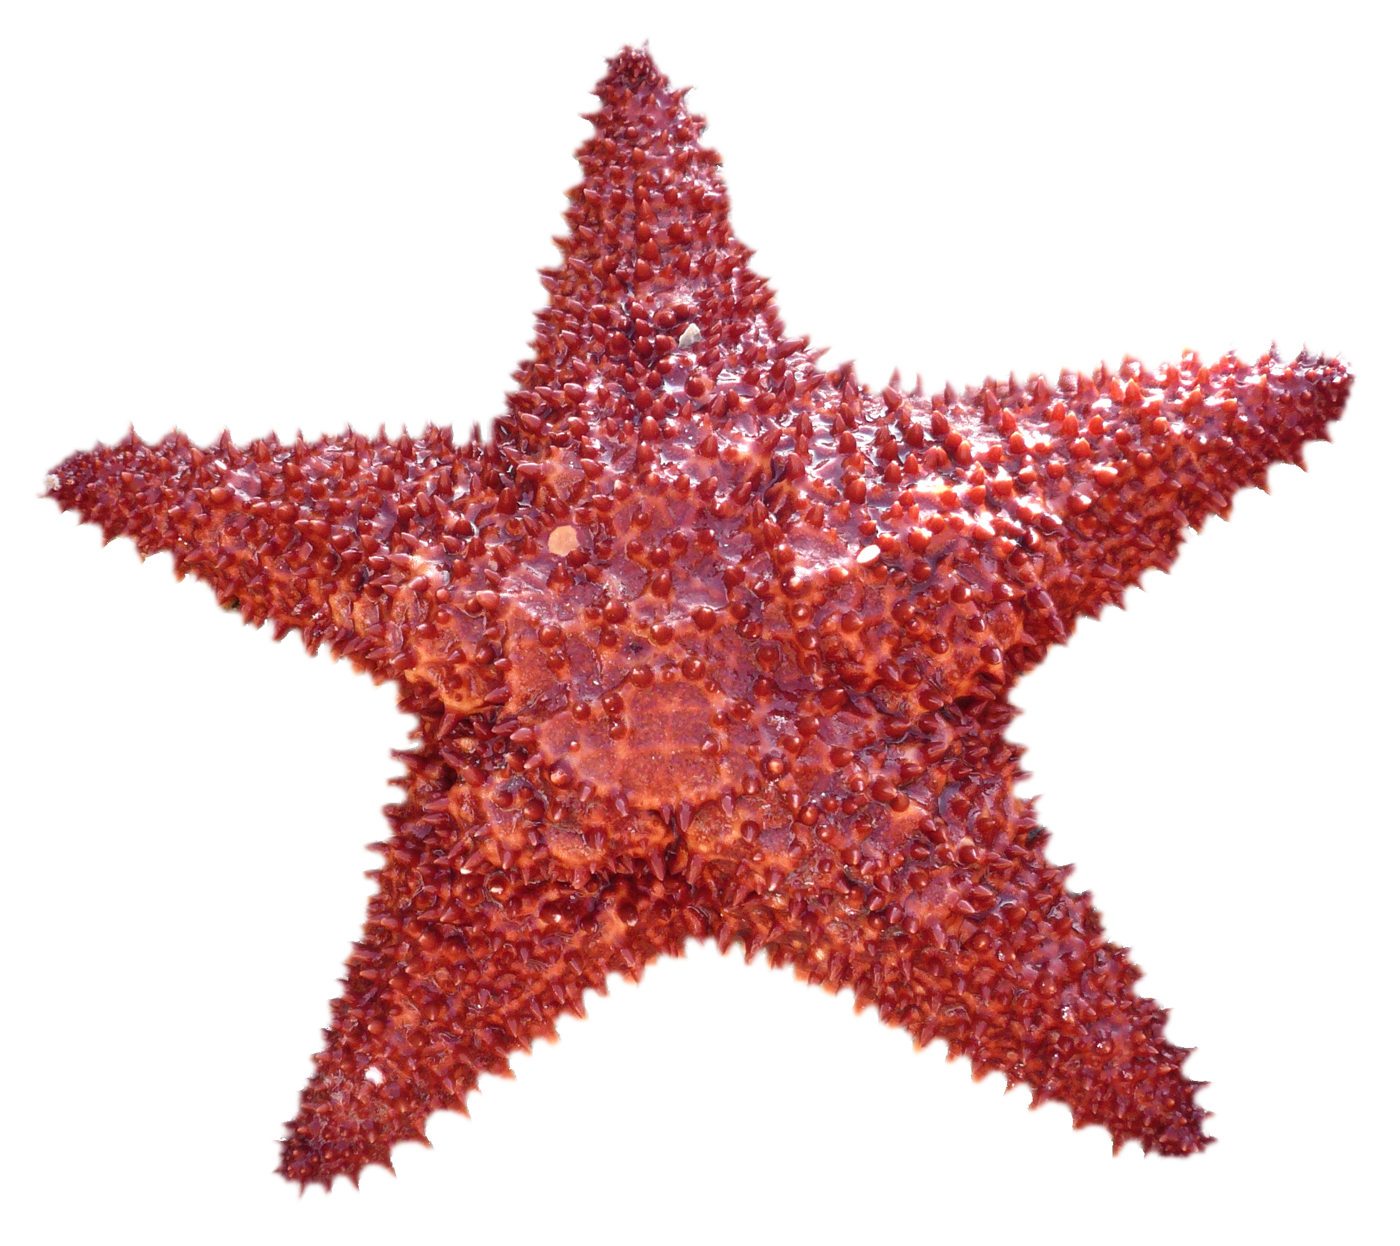 Star fish clipart png image transparent stock Starfish PNG Image - PurePNG | Free transparent CC0 PNG Image Library image transparent stock